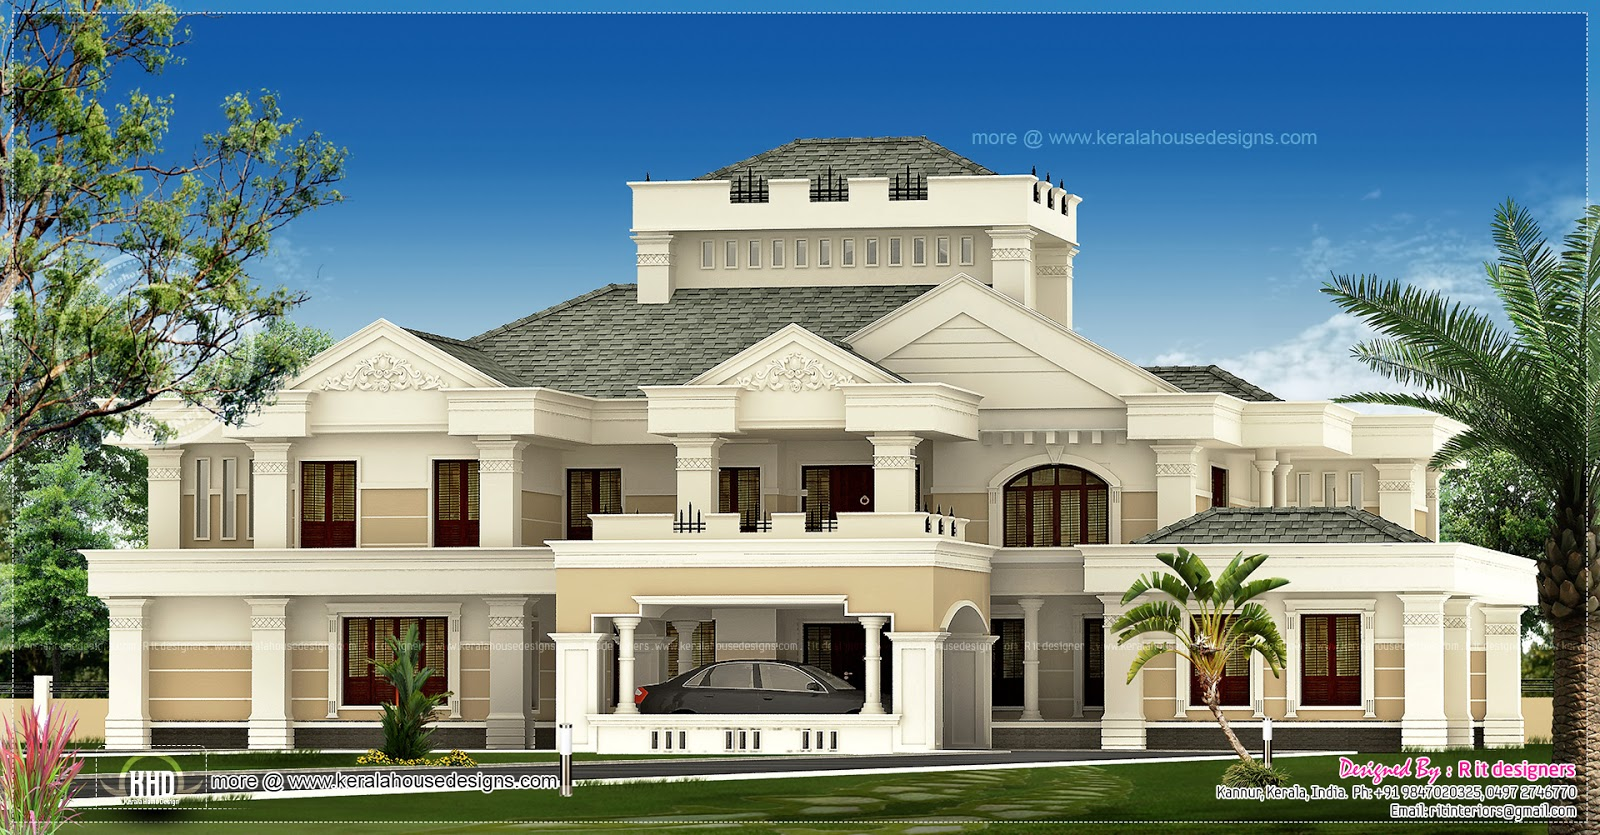 Super luxury kerala house exterior house design plans for Luxury house designs and floor plans